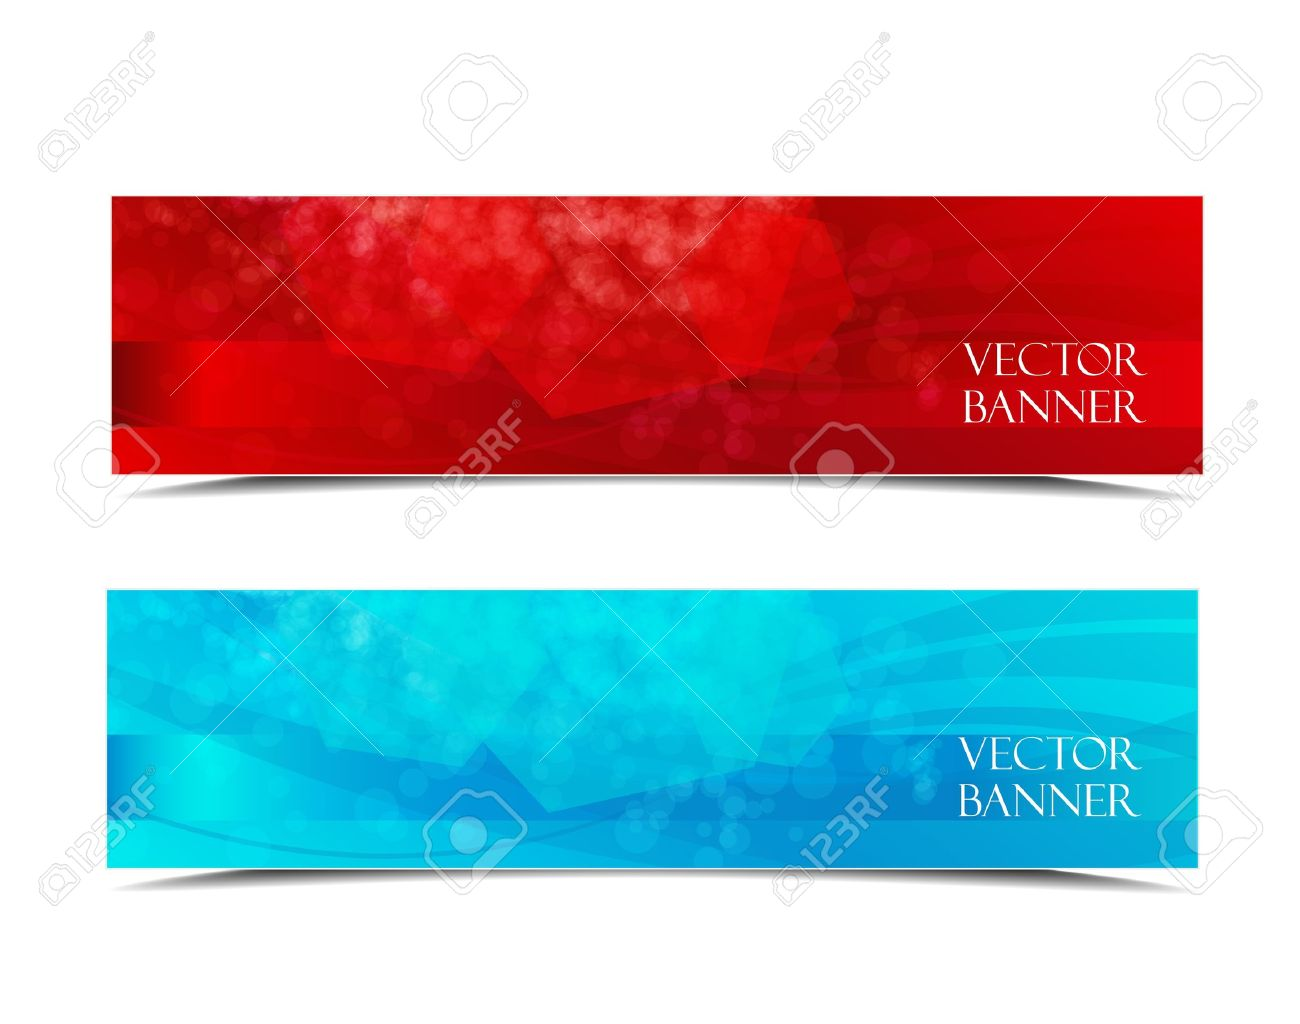 Design vector banner - Two Banners Modern Wave Design Colorful Background Stock Vector 16004708